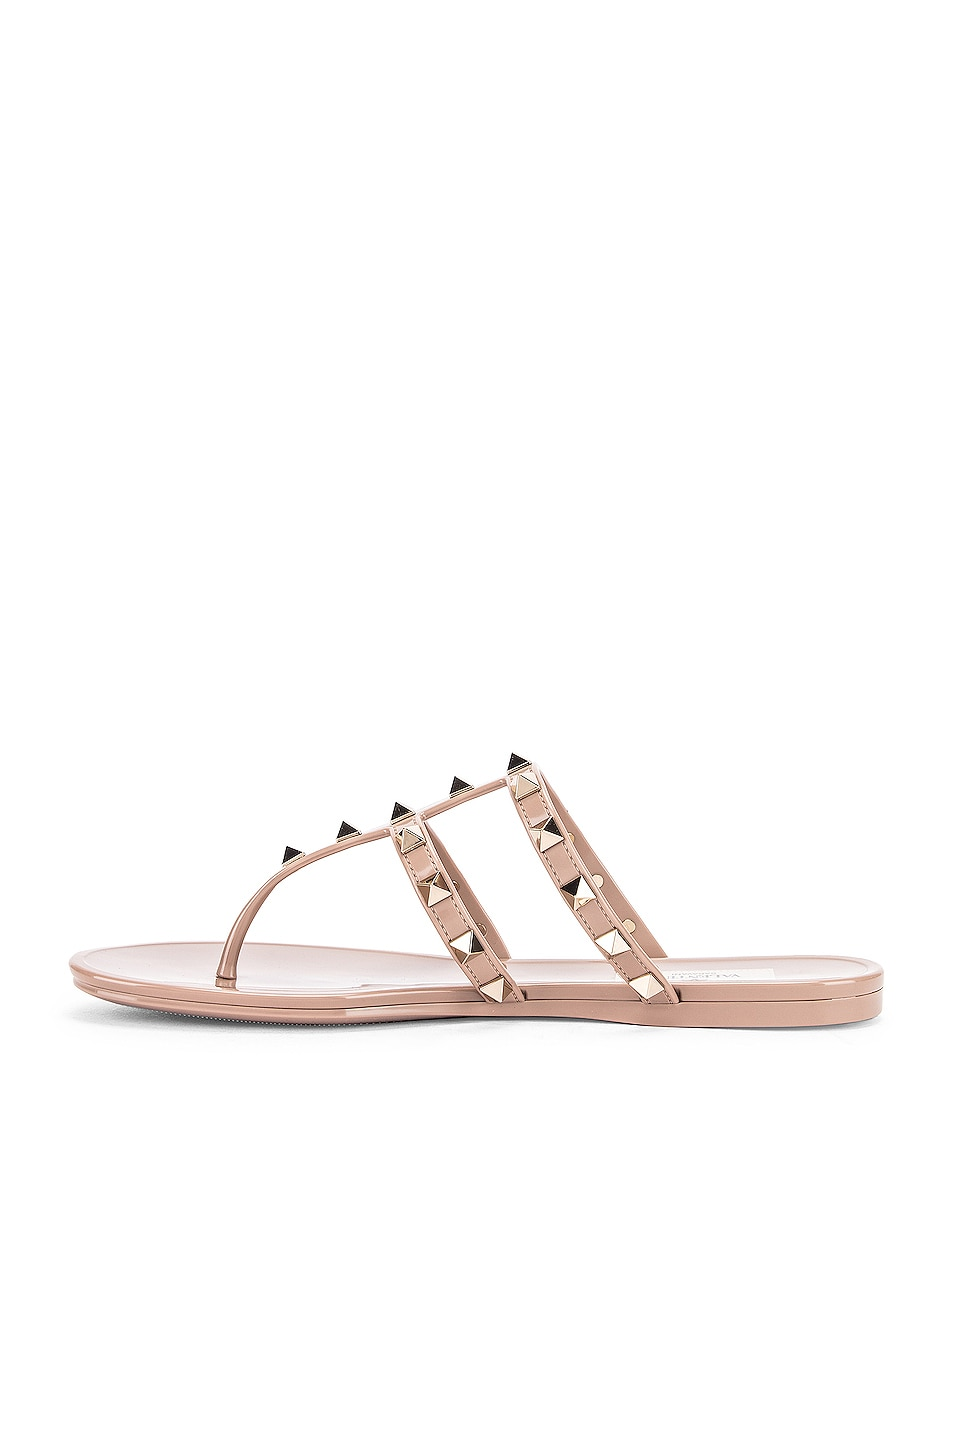 Image 5 of Valentino Rockstud Summer Thong Sandals in Poudre